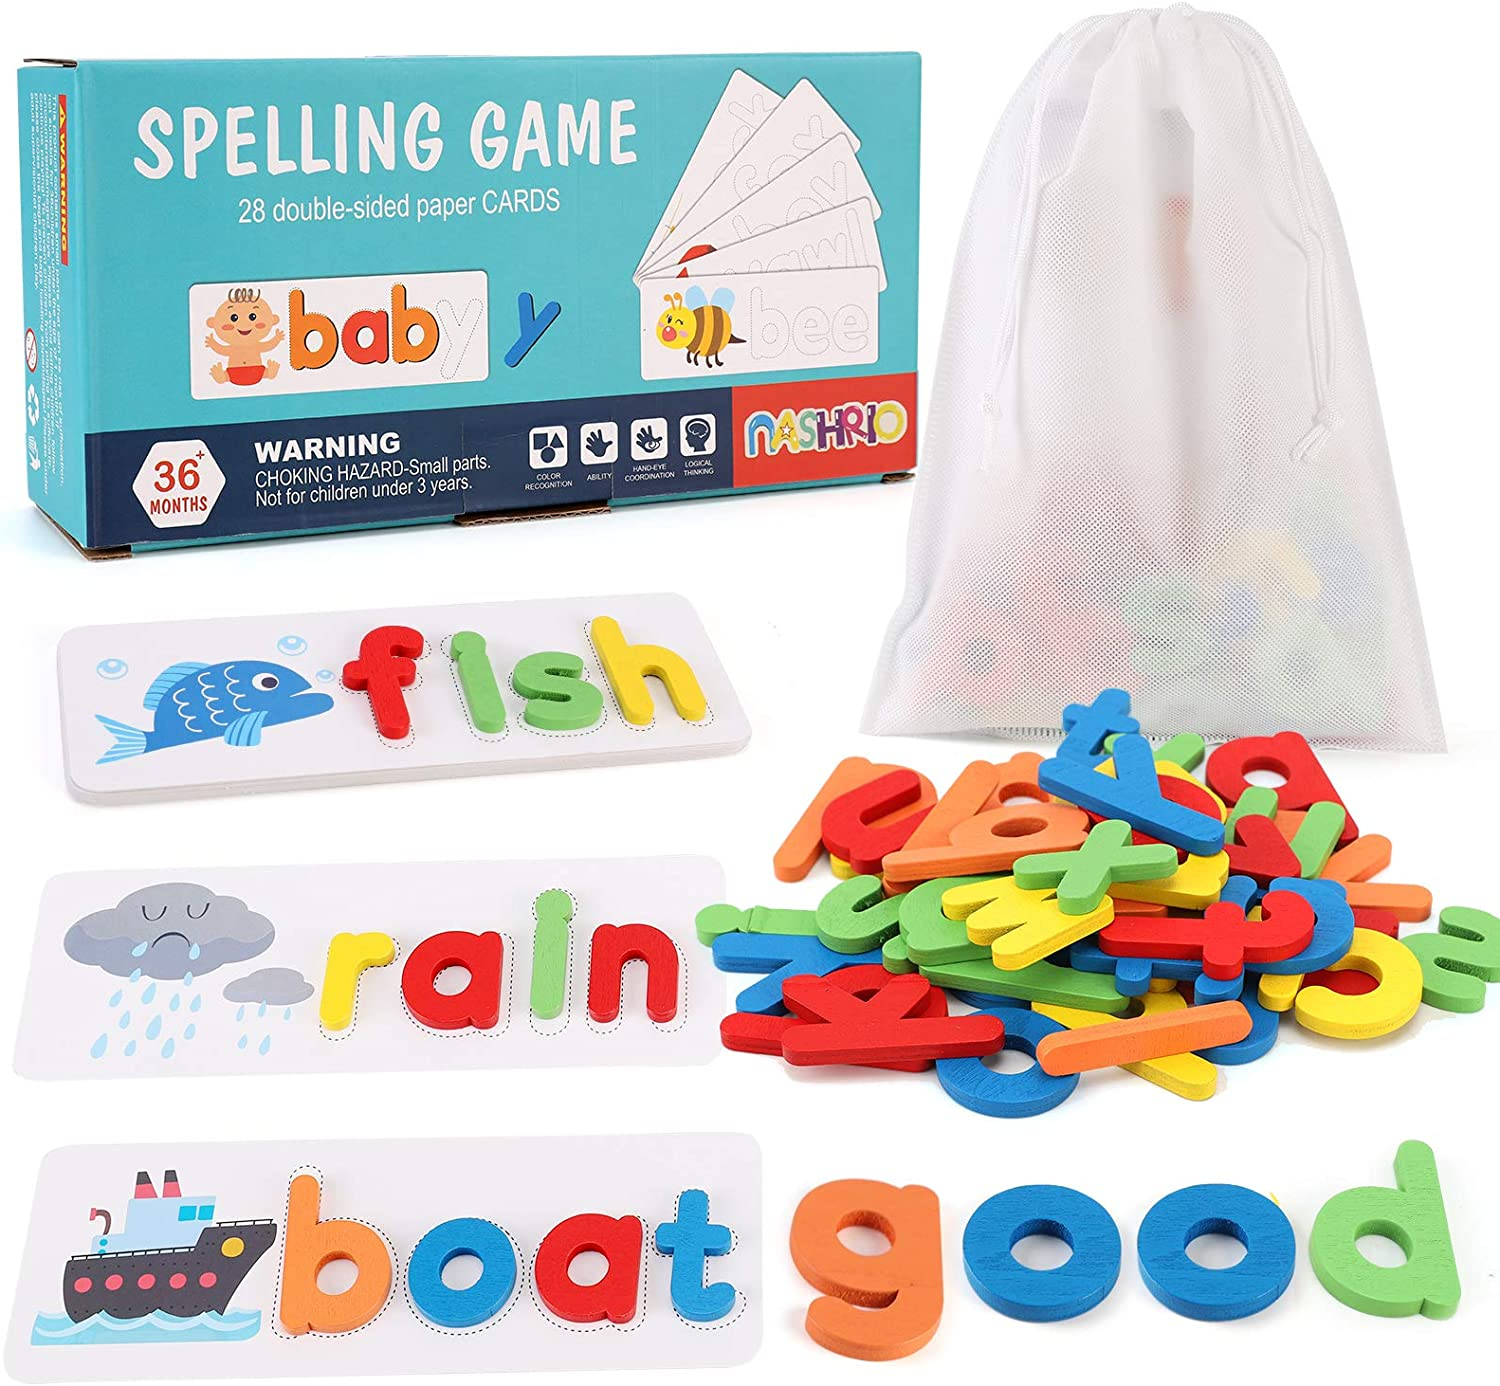 See and Spelling Learning Toy for Kids Ages 3-8, Wooden Preschool Educational Matching Letter Game Toys for Kids Boys Girls, Develops Alphabet Words Spelling Skills Letter Block (28 Cards+52 Letters)